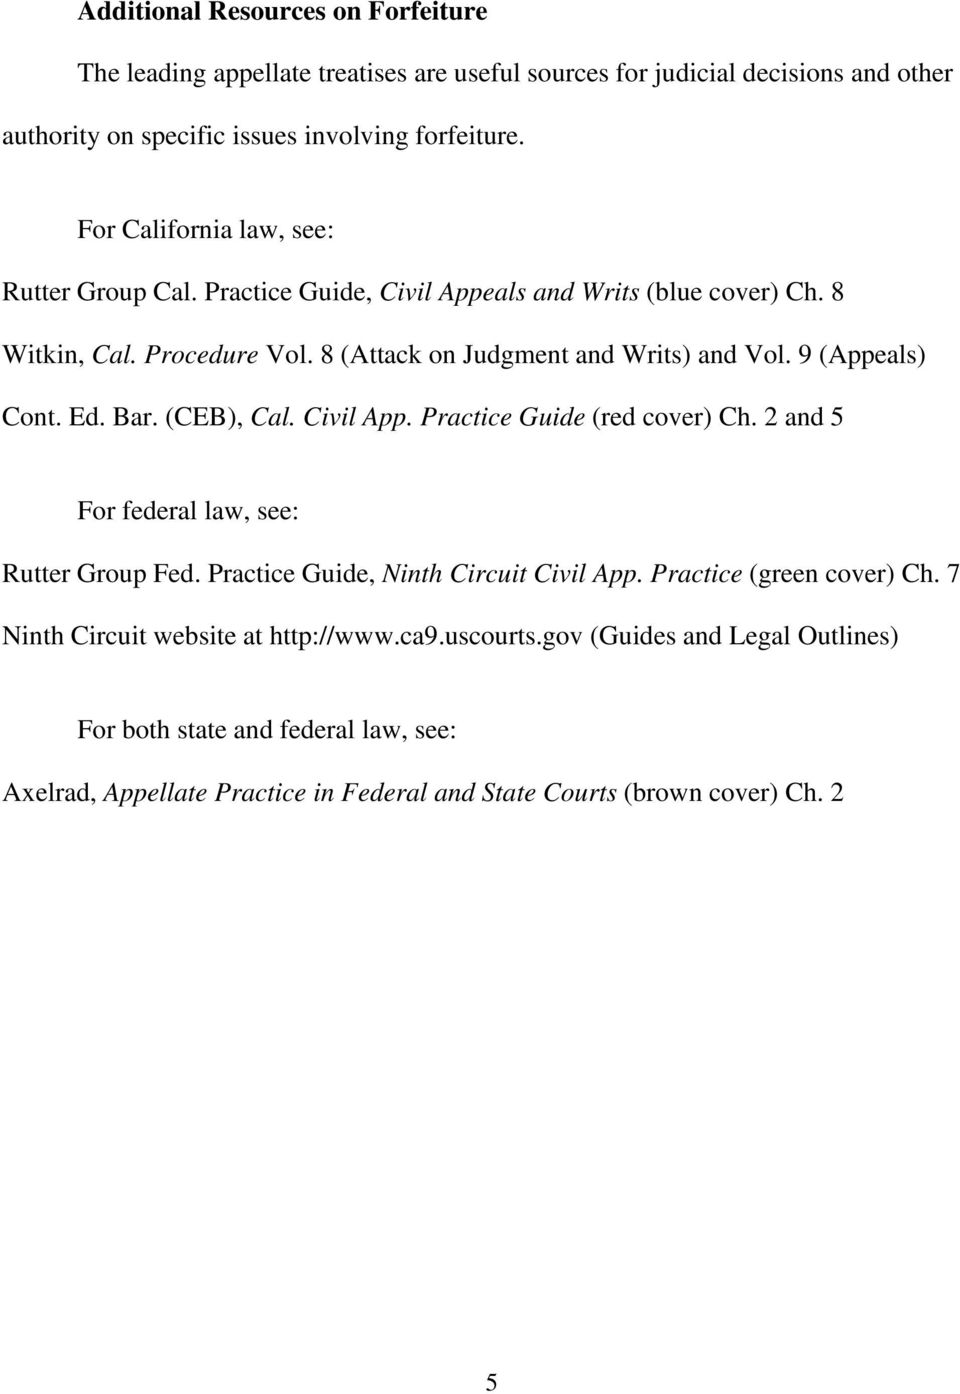 9 (Appeals) Cont. Ed. Bar. (CEB), Cal. Civil App. Practice Guide (red cover) Ch. 2 and 5 For federal law, see: Rutter Group Fed. Practice Guide, Ninth Circuit Civil App.